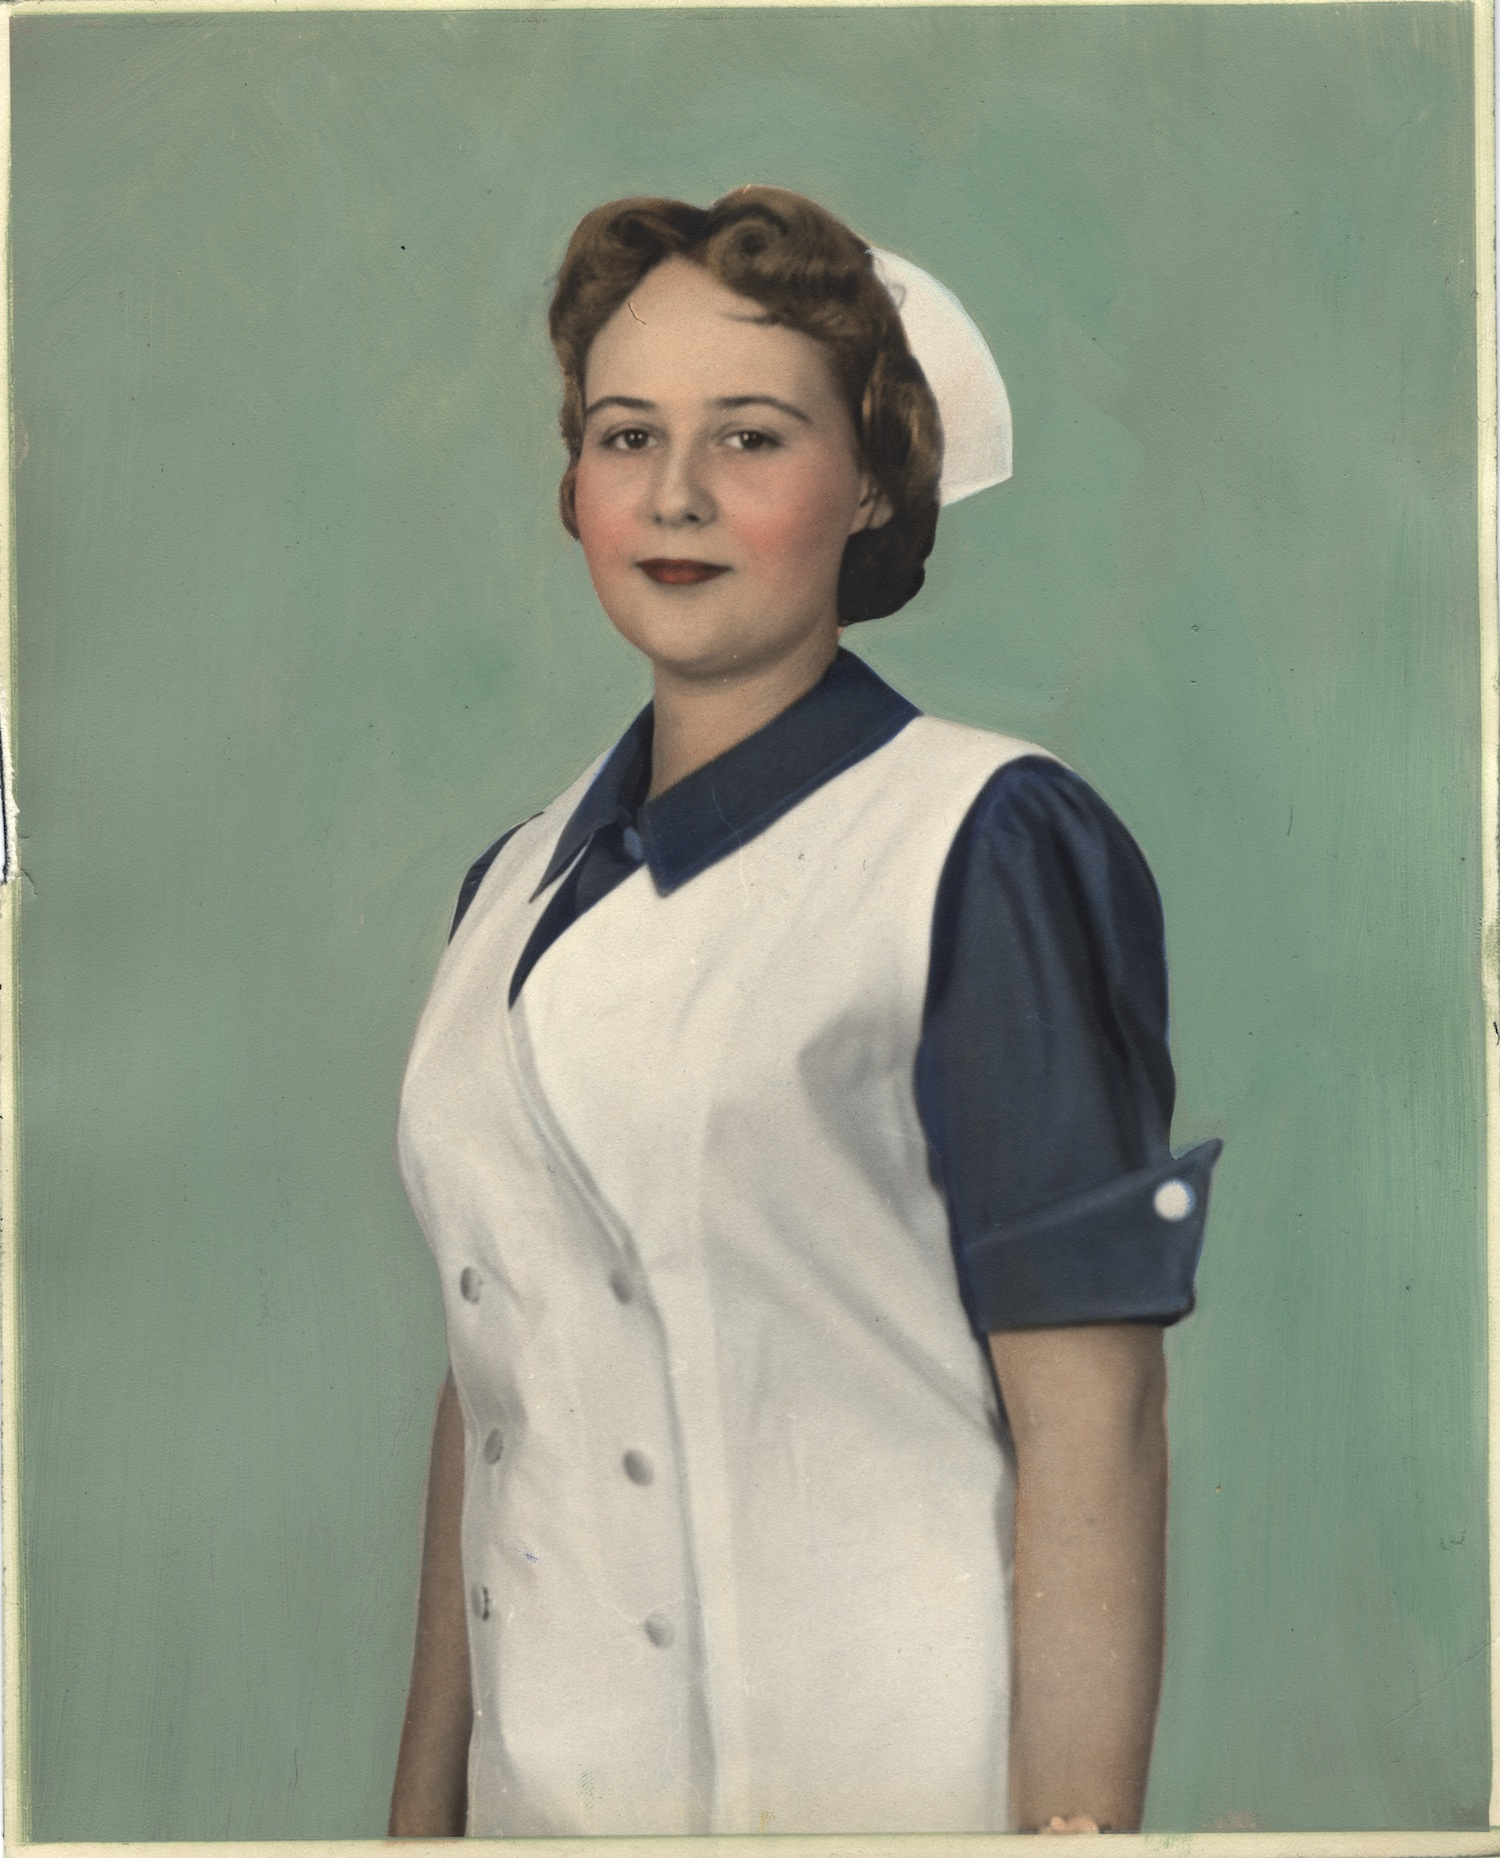 Nurse wearing uniform from Canada